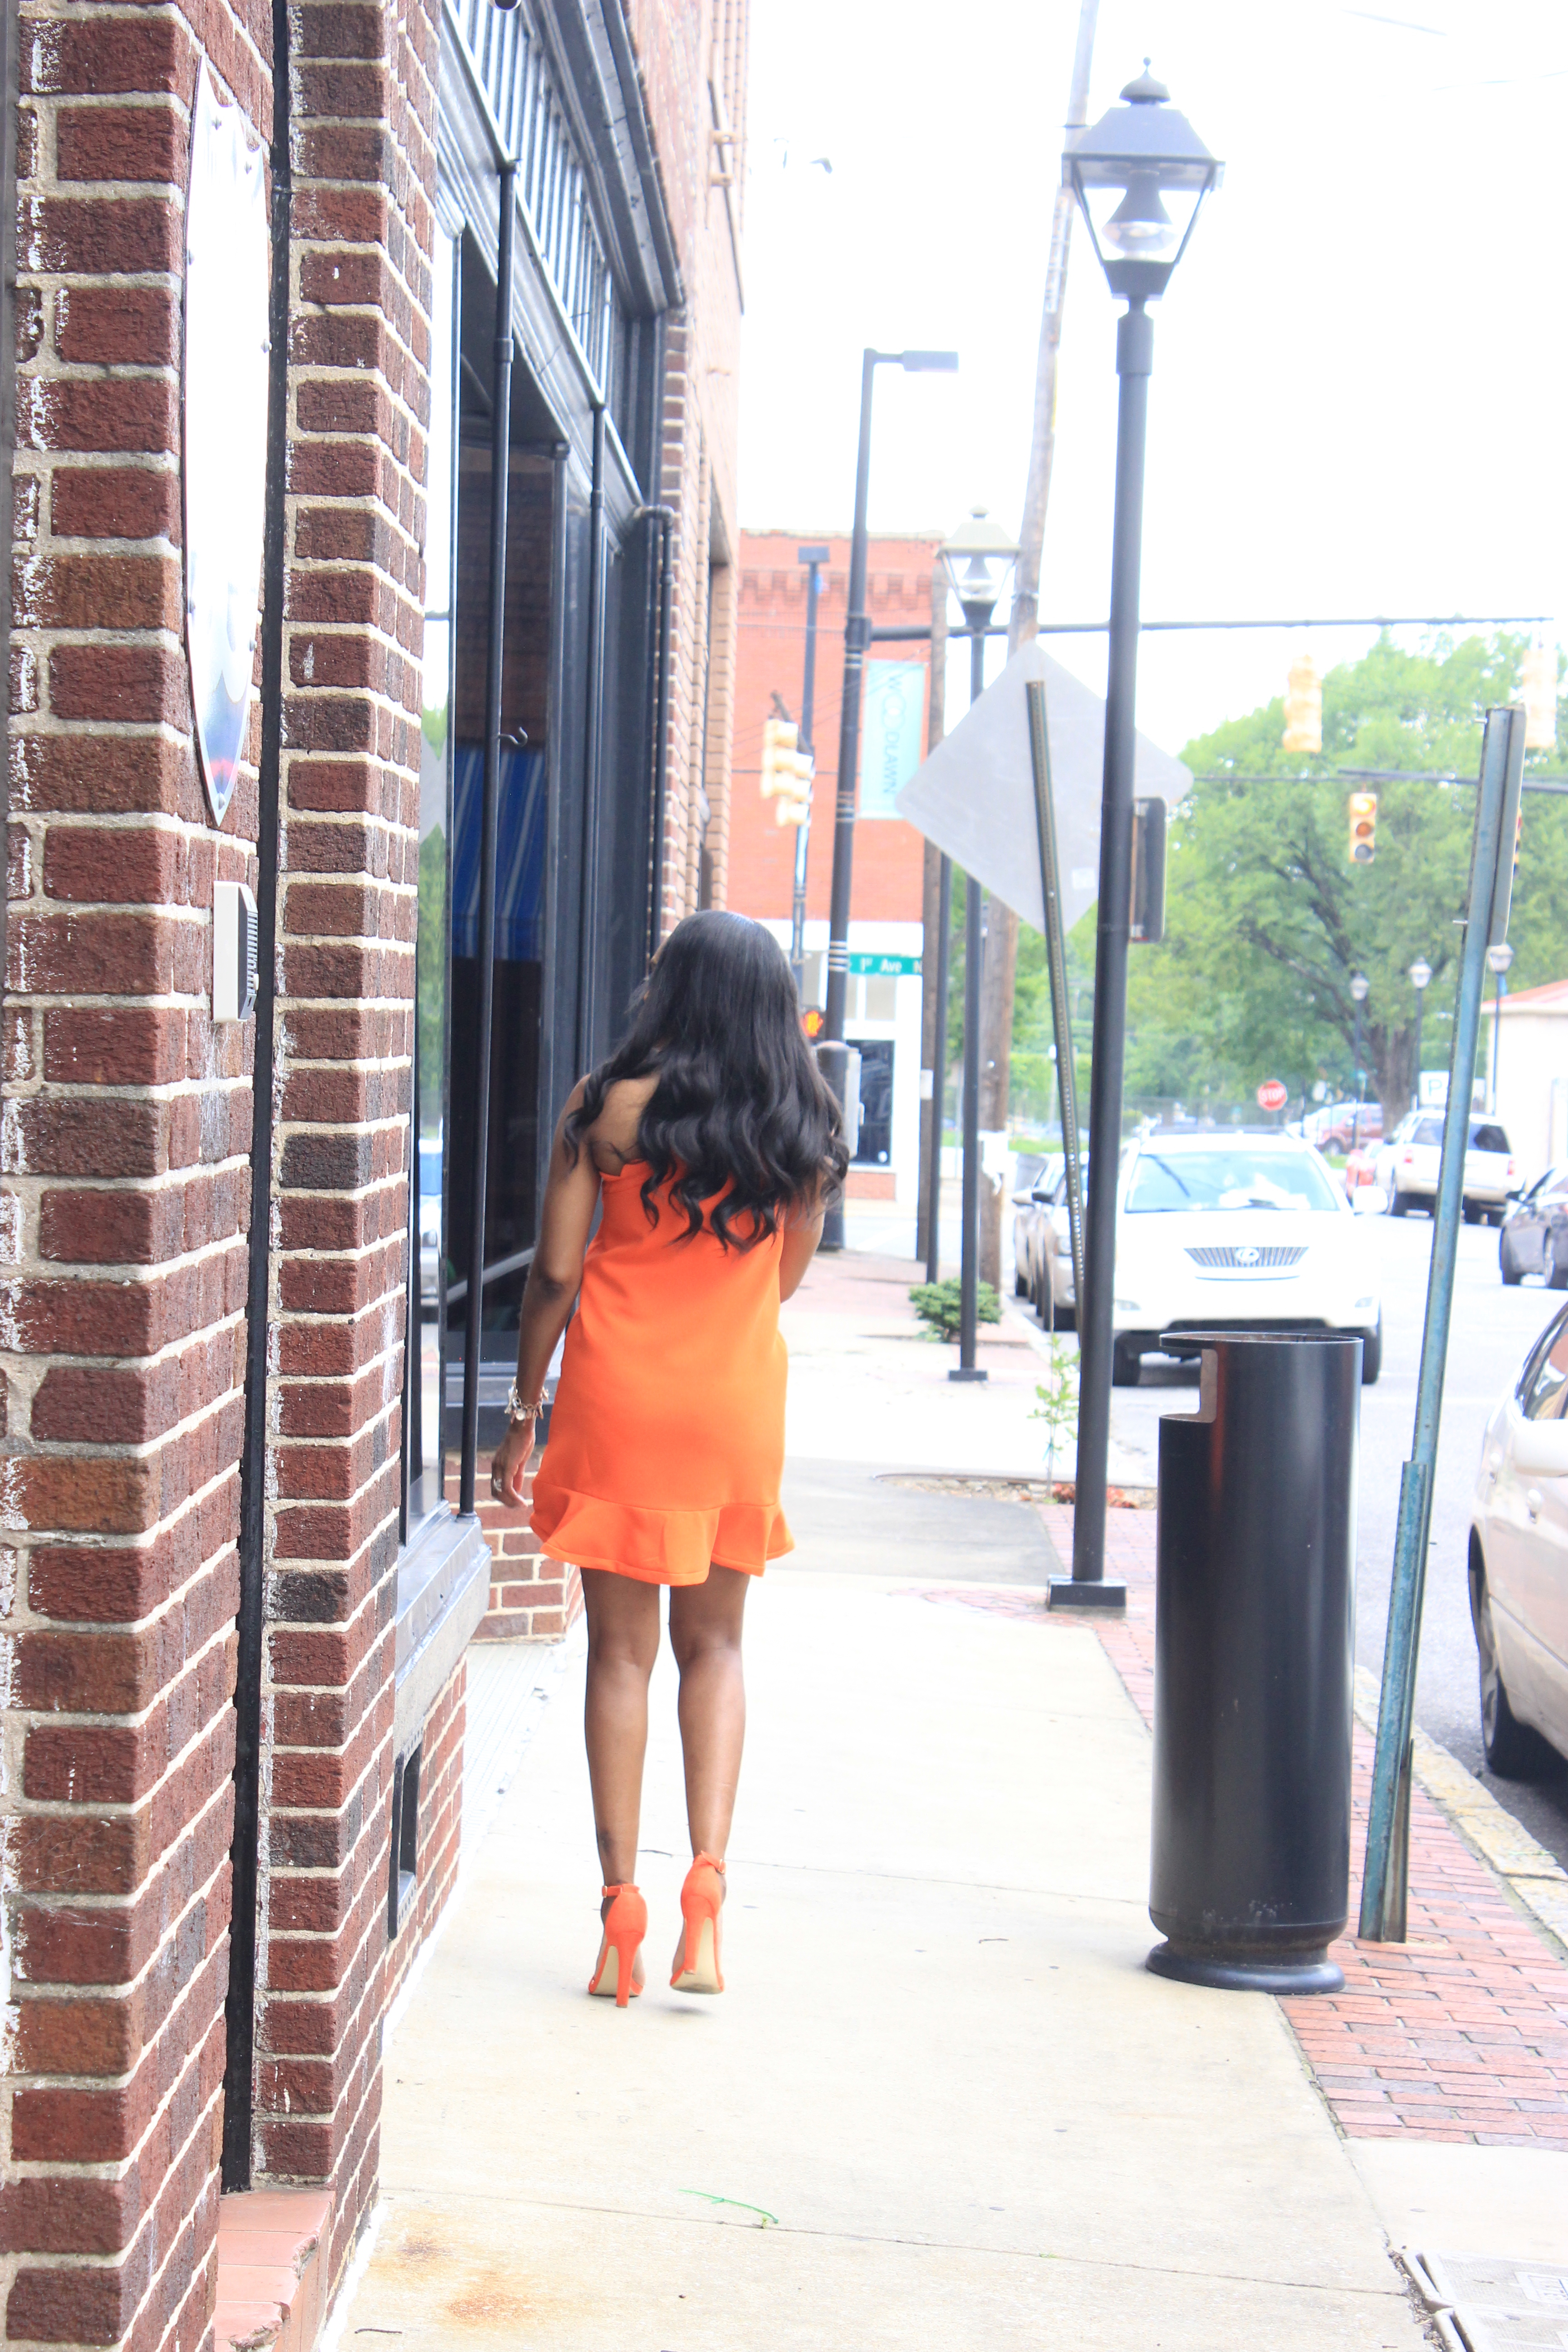 Style-Files-Orange-One Shoulder Dress-with-Bow and-Scallop-Trim-Victoria Beckham-for-Target-How-to-wear-victoria-beckham-for-target-Victoria-Beckham-for-Target-Review-Justfab-orange-kati-ankle-strap-sandals-oohlalablog-5